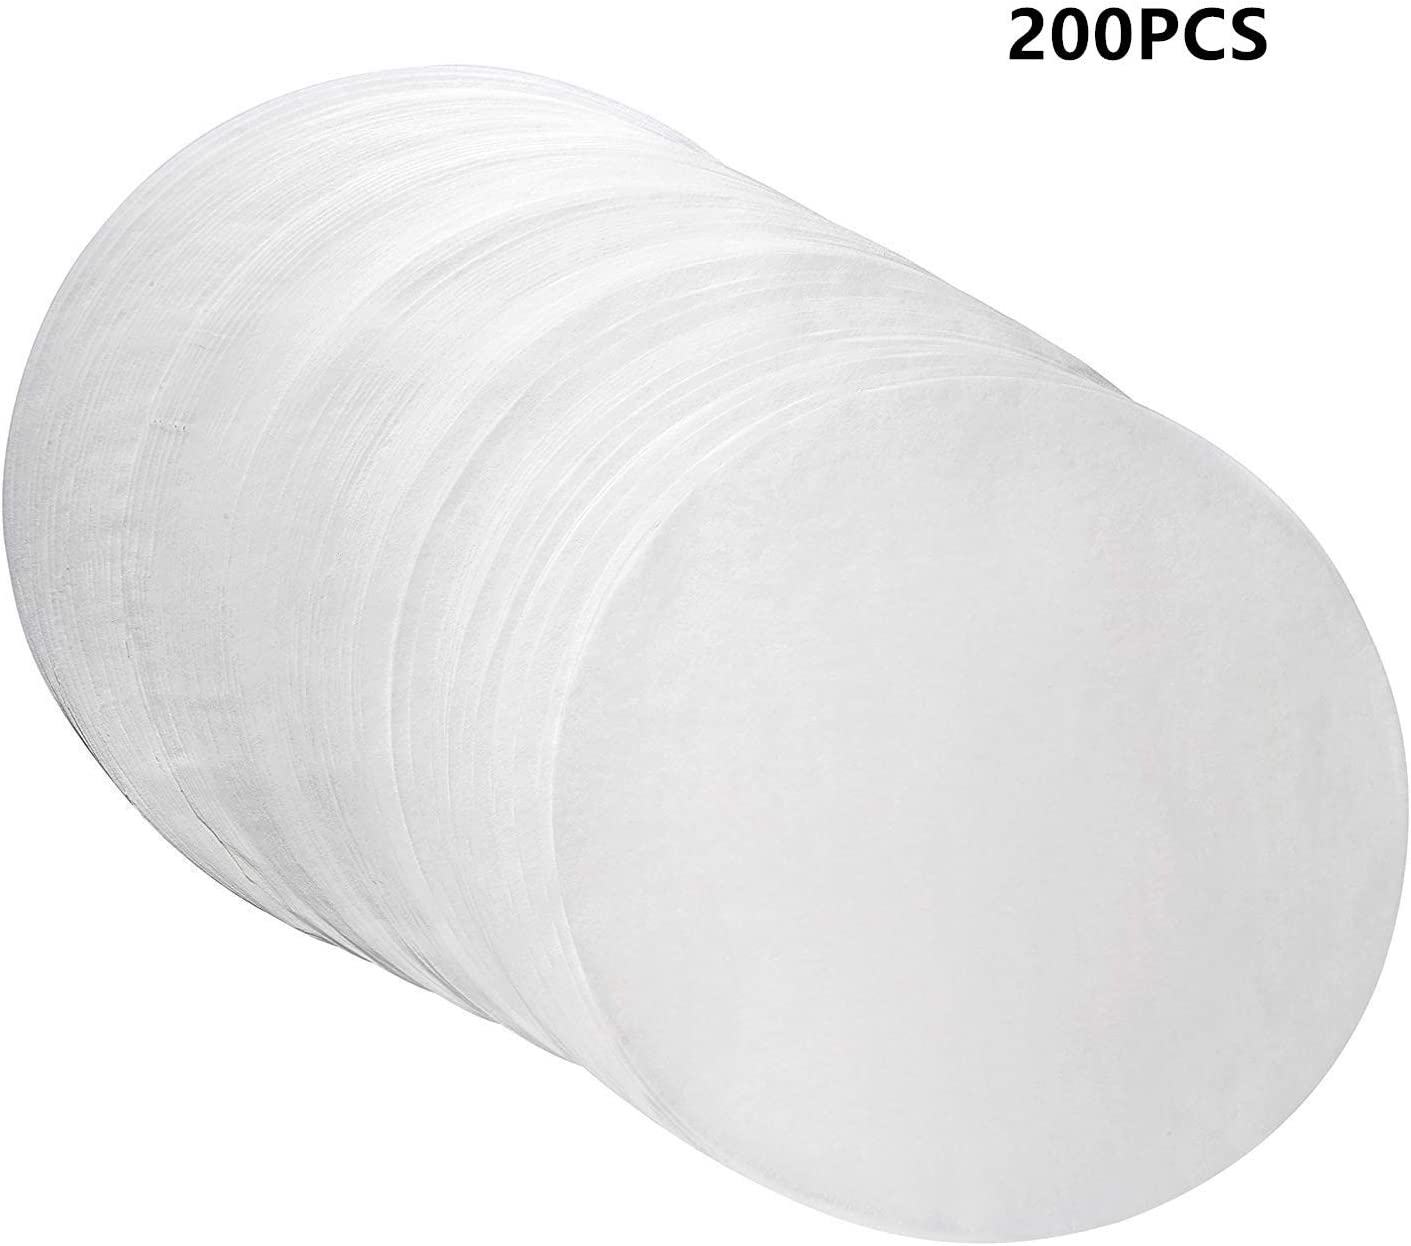 200pcs Parchment Paper Baking Circles 6 Inch Diameter, Baking Paper Liners for Baking Cakes, Cooking, Dutch Oven, Air Fryer, Cheesecakes, Tortilla Press